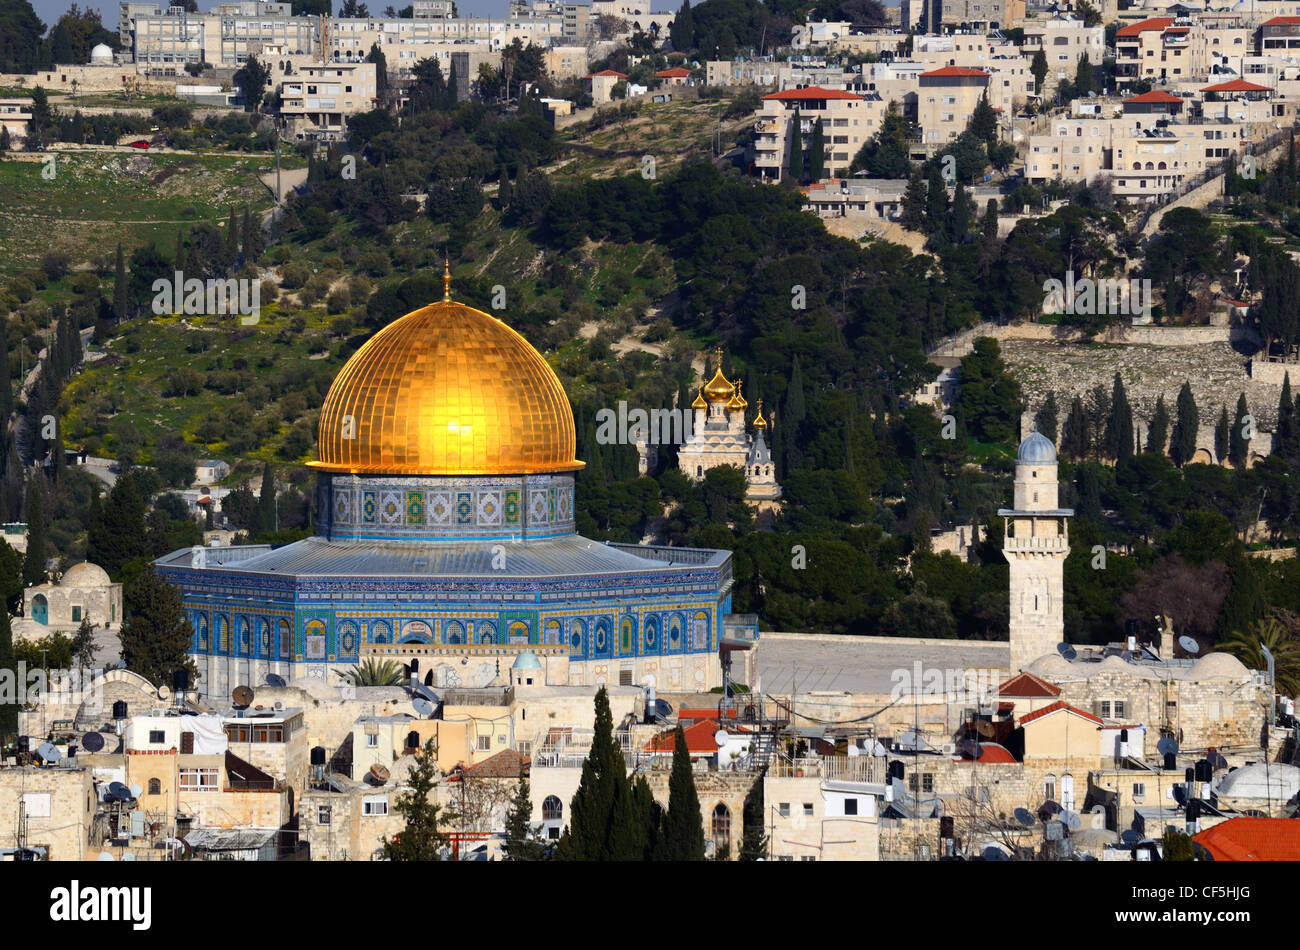 Dome of the Rock on the Temple Mount in Jerusalem, Israel. Stock Photo